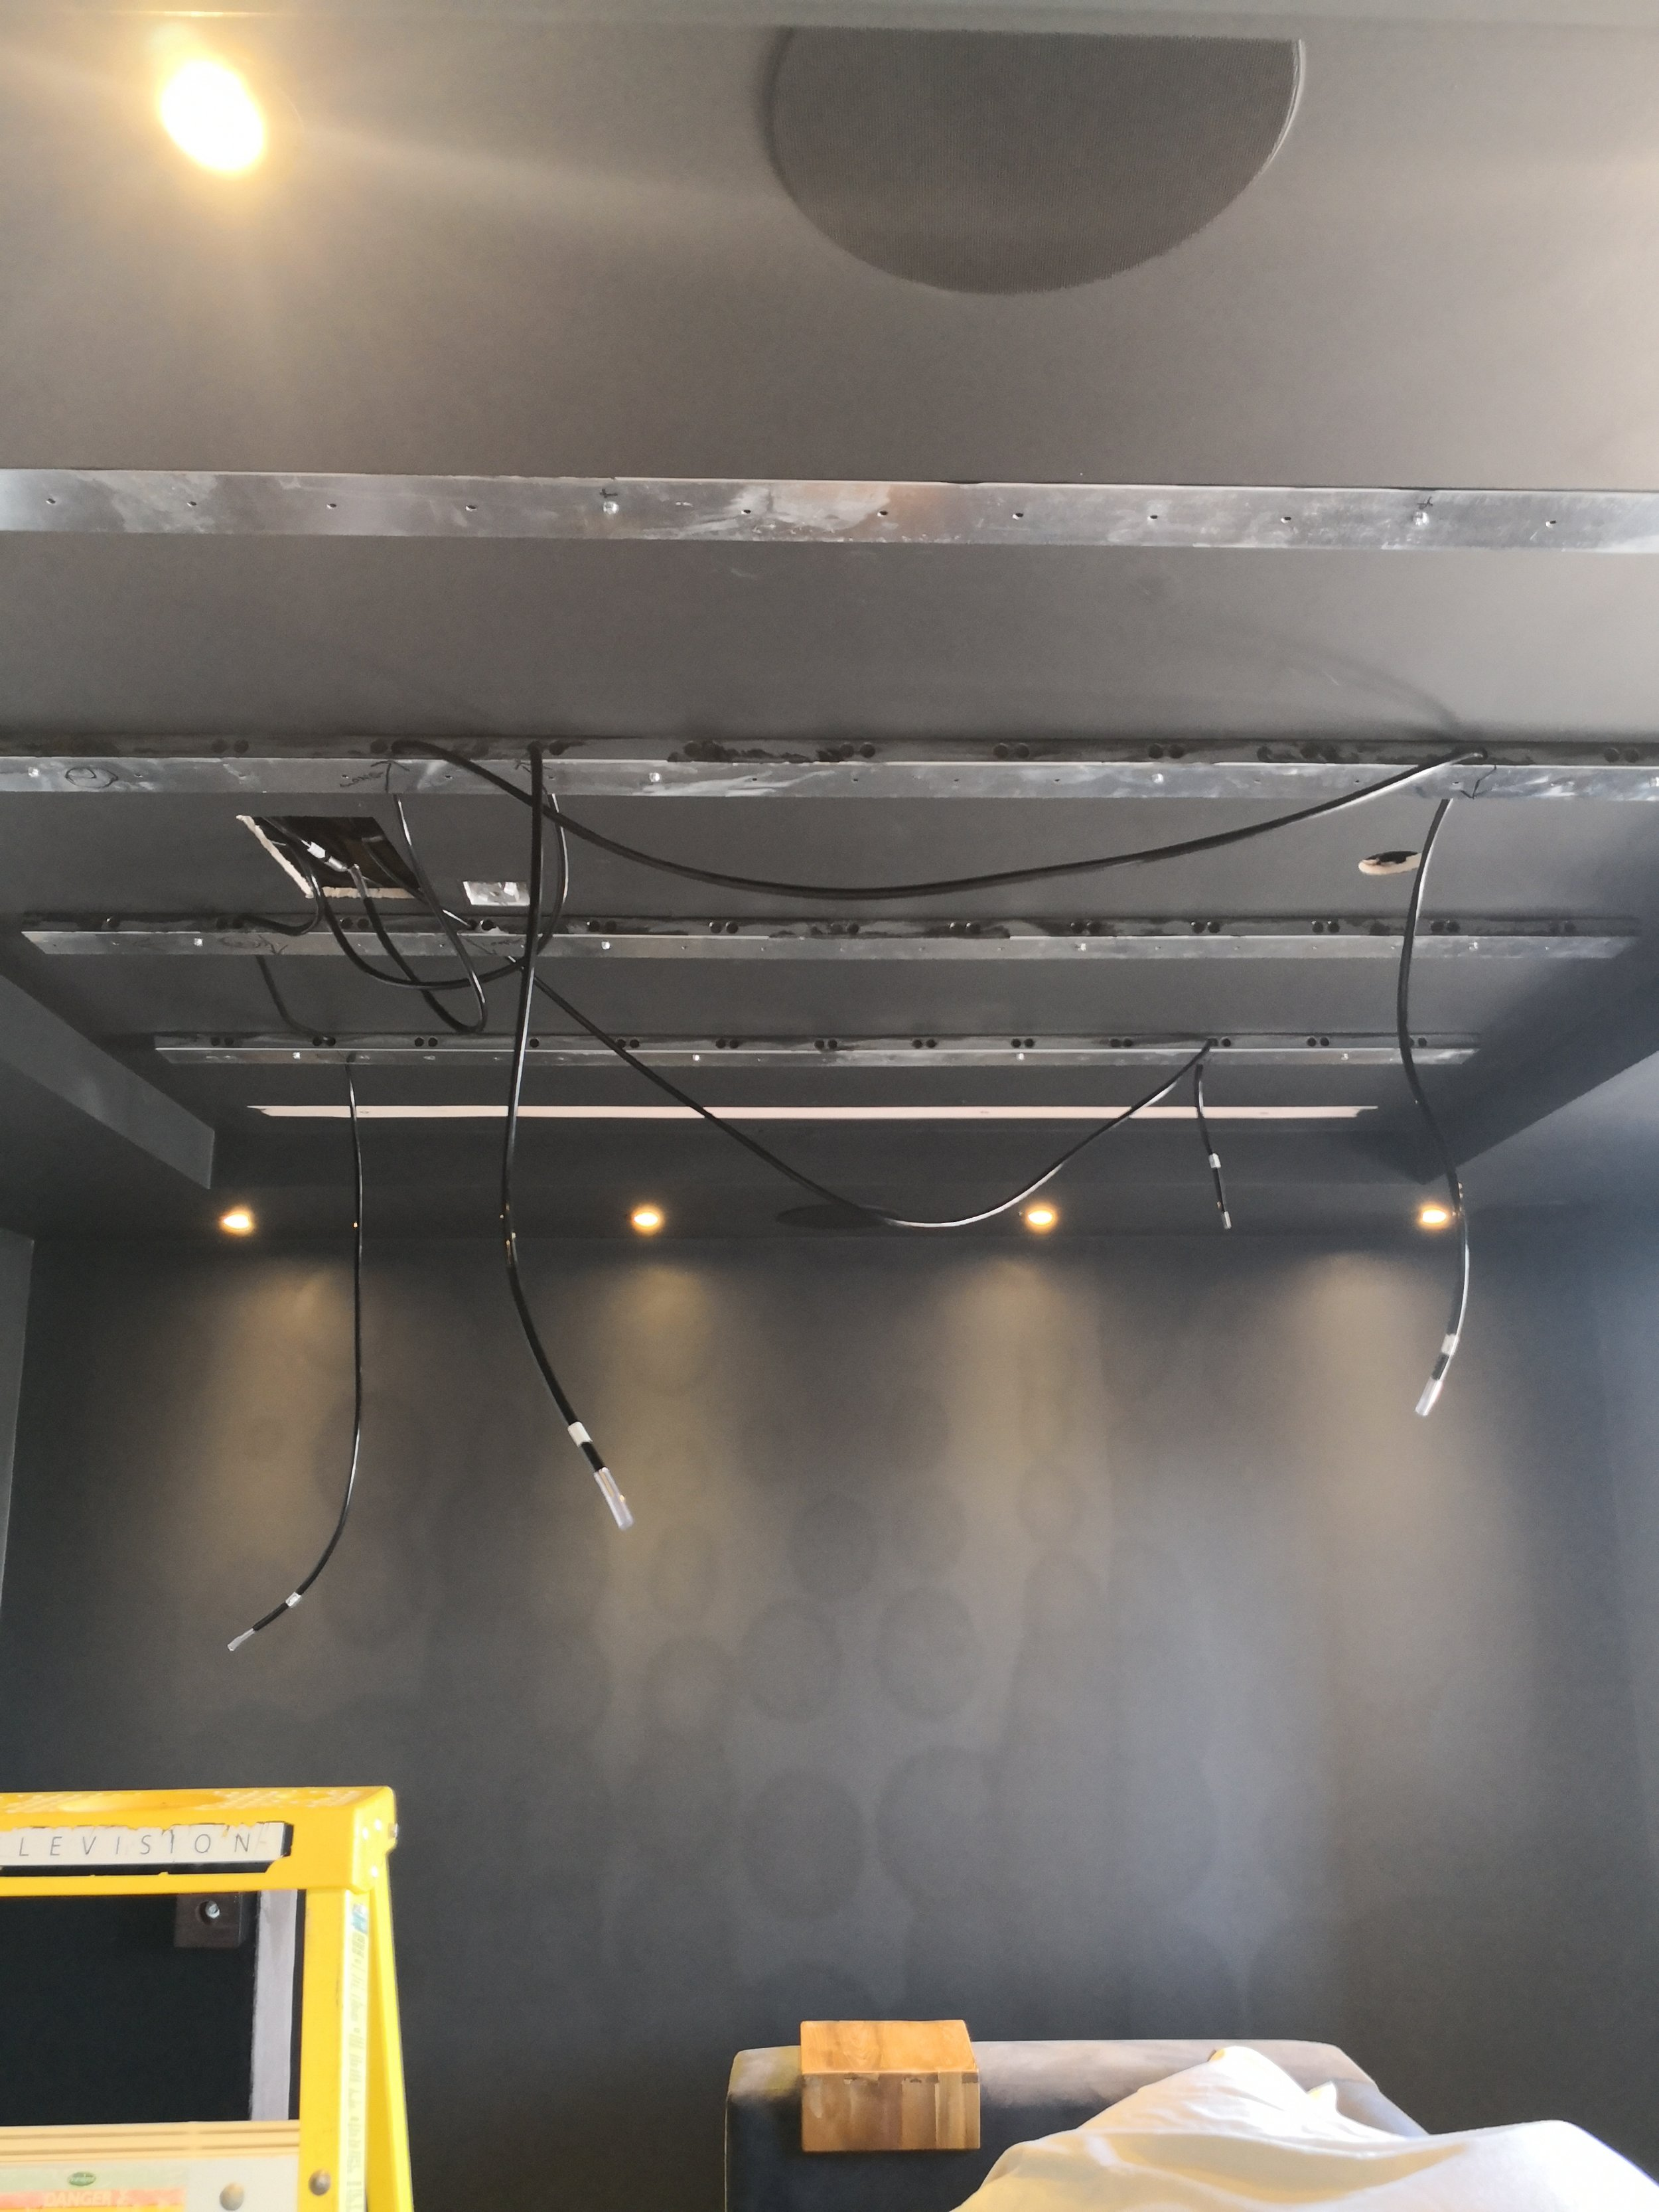 Mounting bars and optical cables for the star ceiling